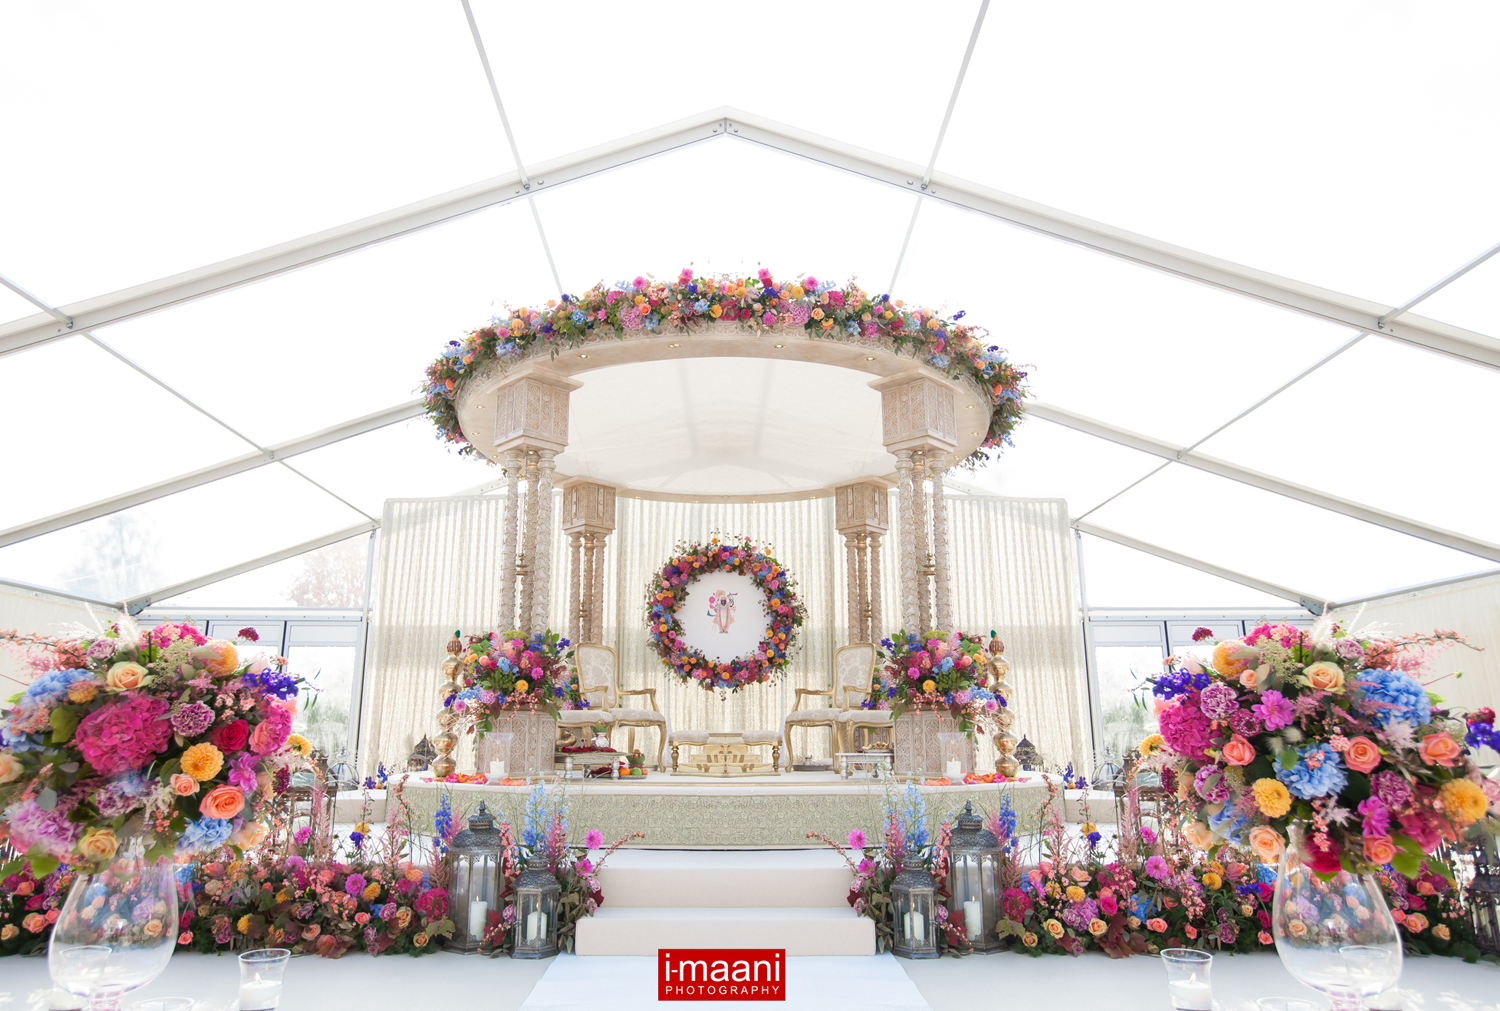 A beautiful Mandap with a border of flowers around the stage , floral Halo backdrop and a border around the perimeter of the Mandap canopy